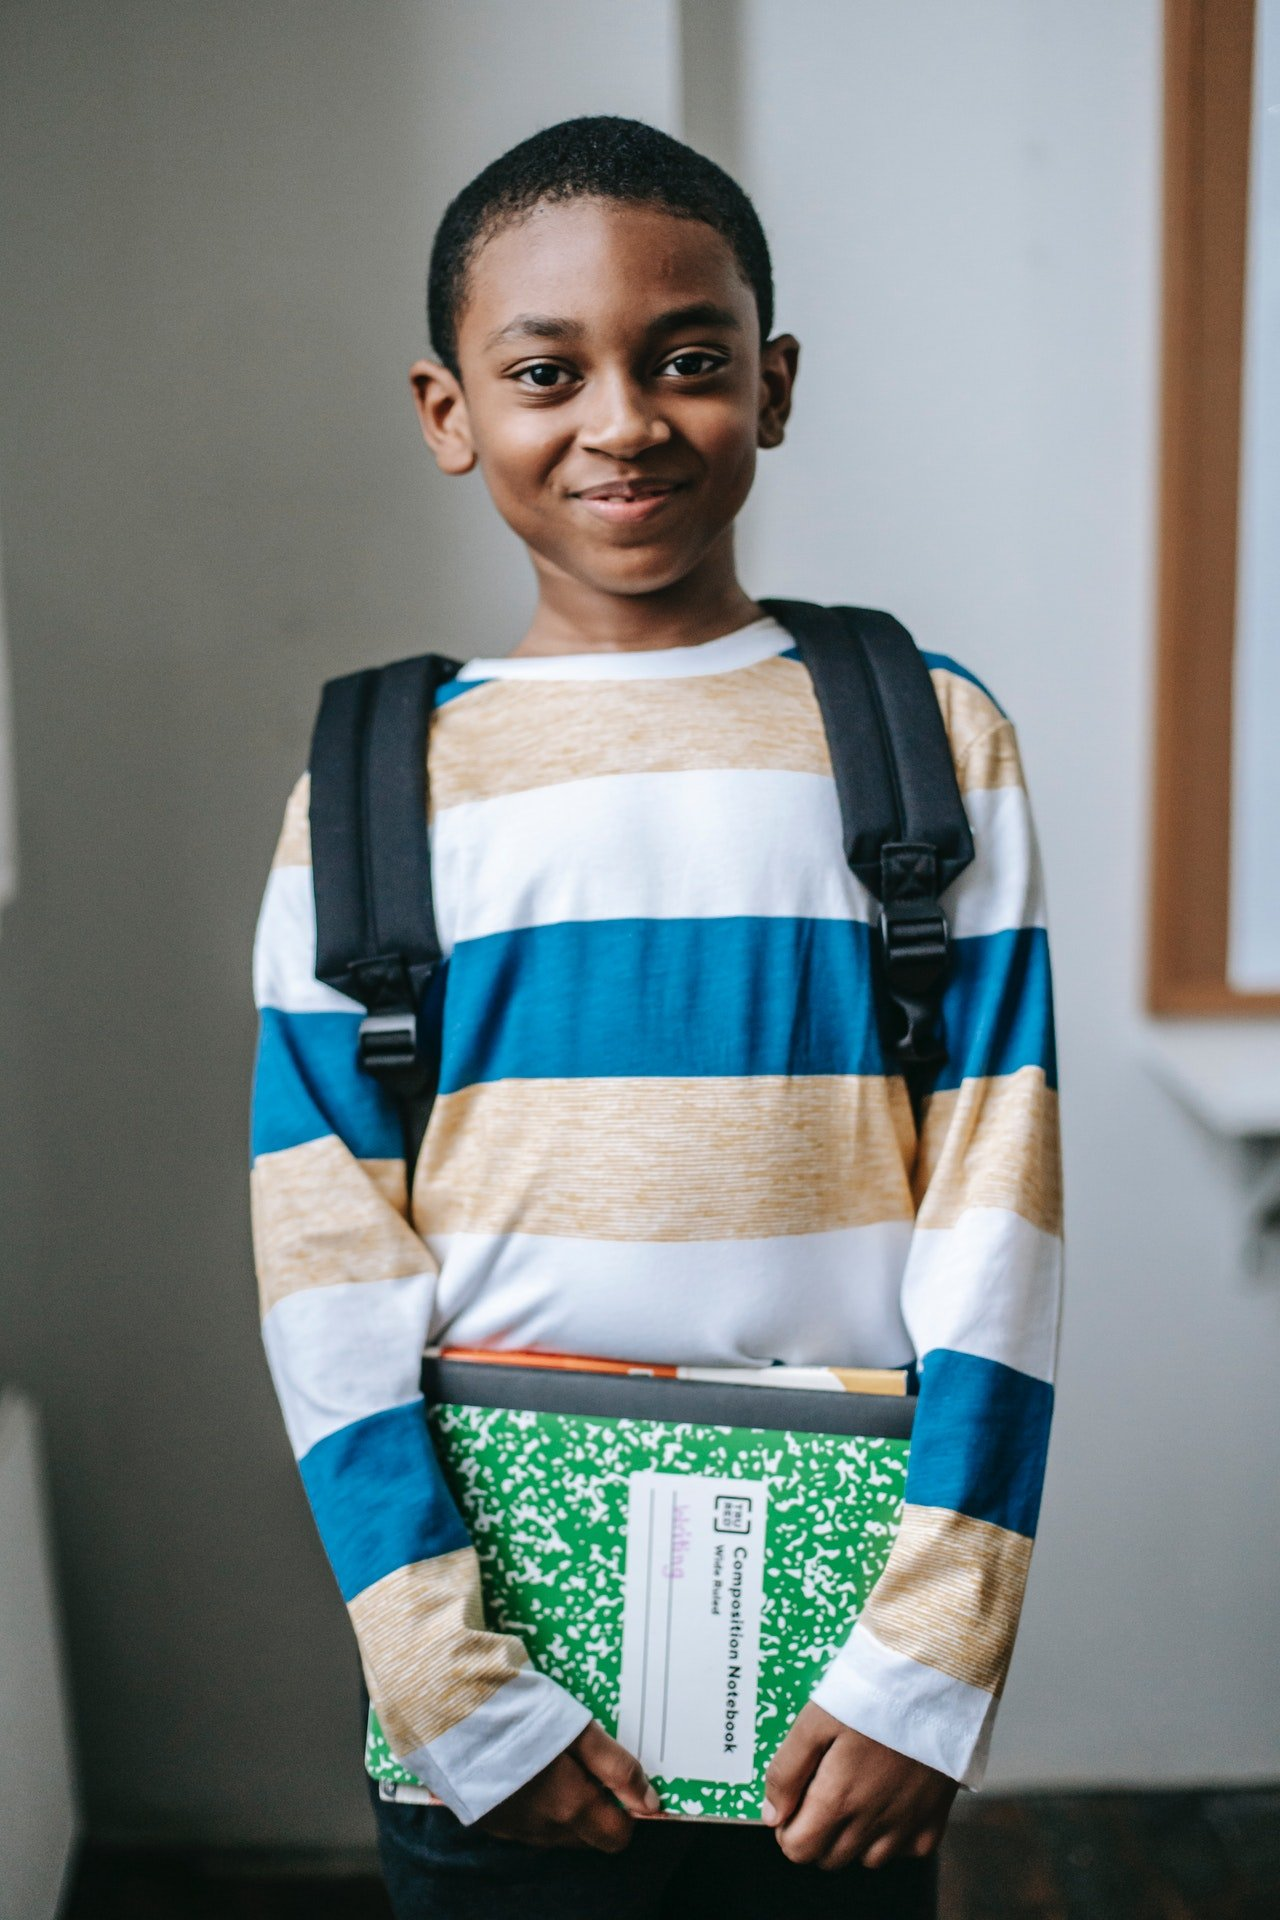 Photo of young boy smiling | Photo: Pexels